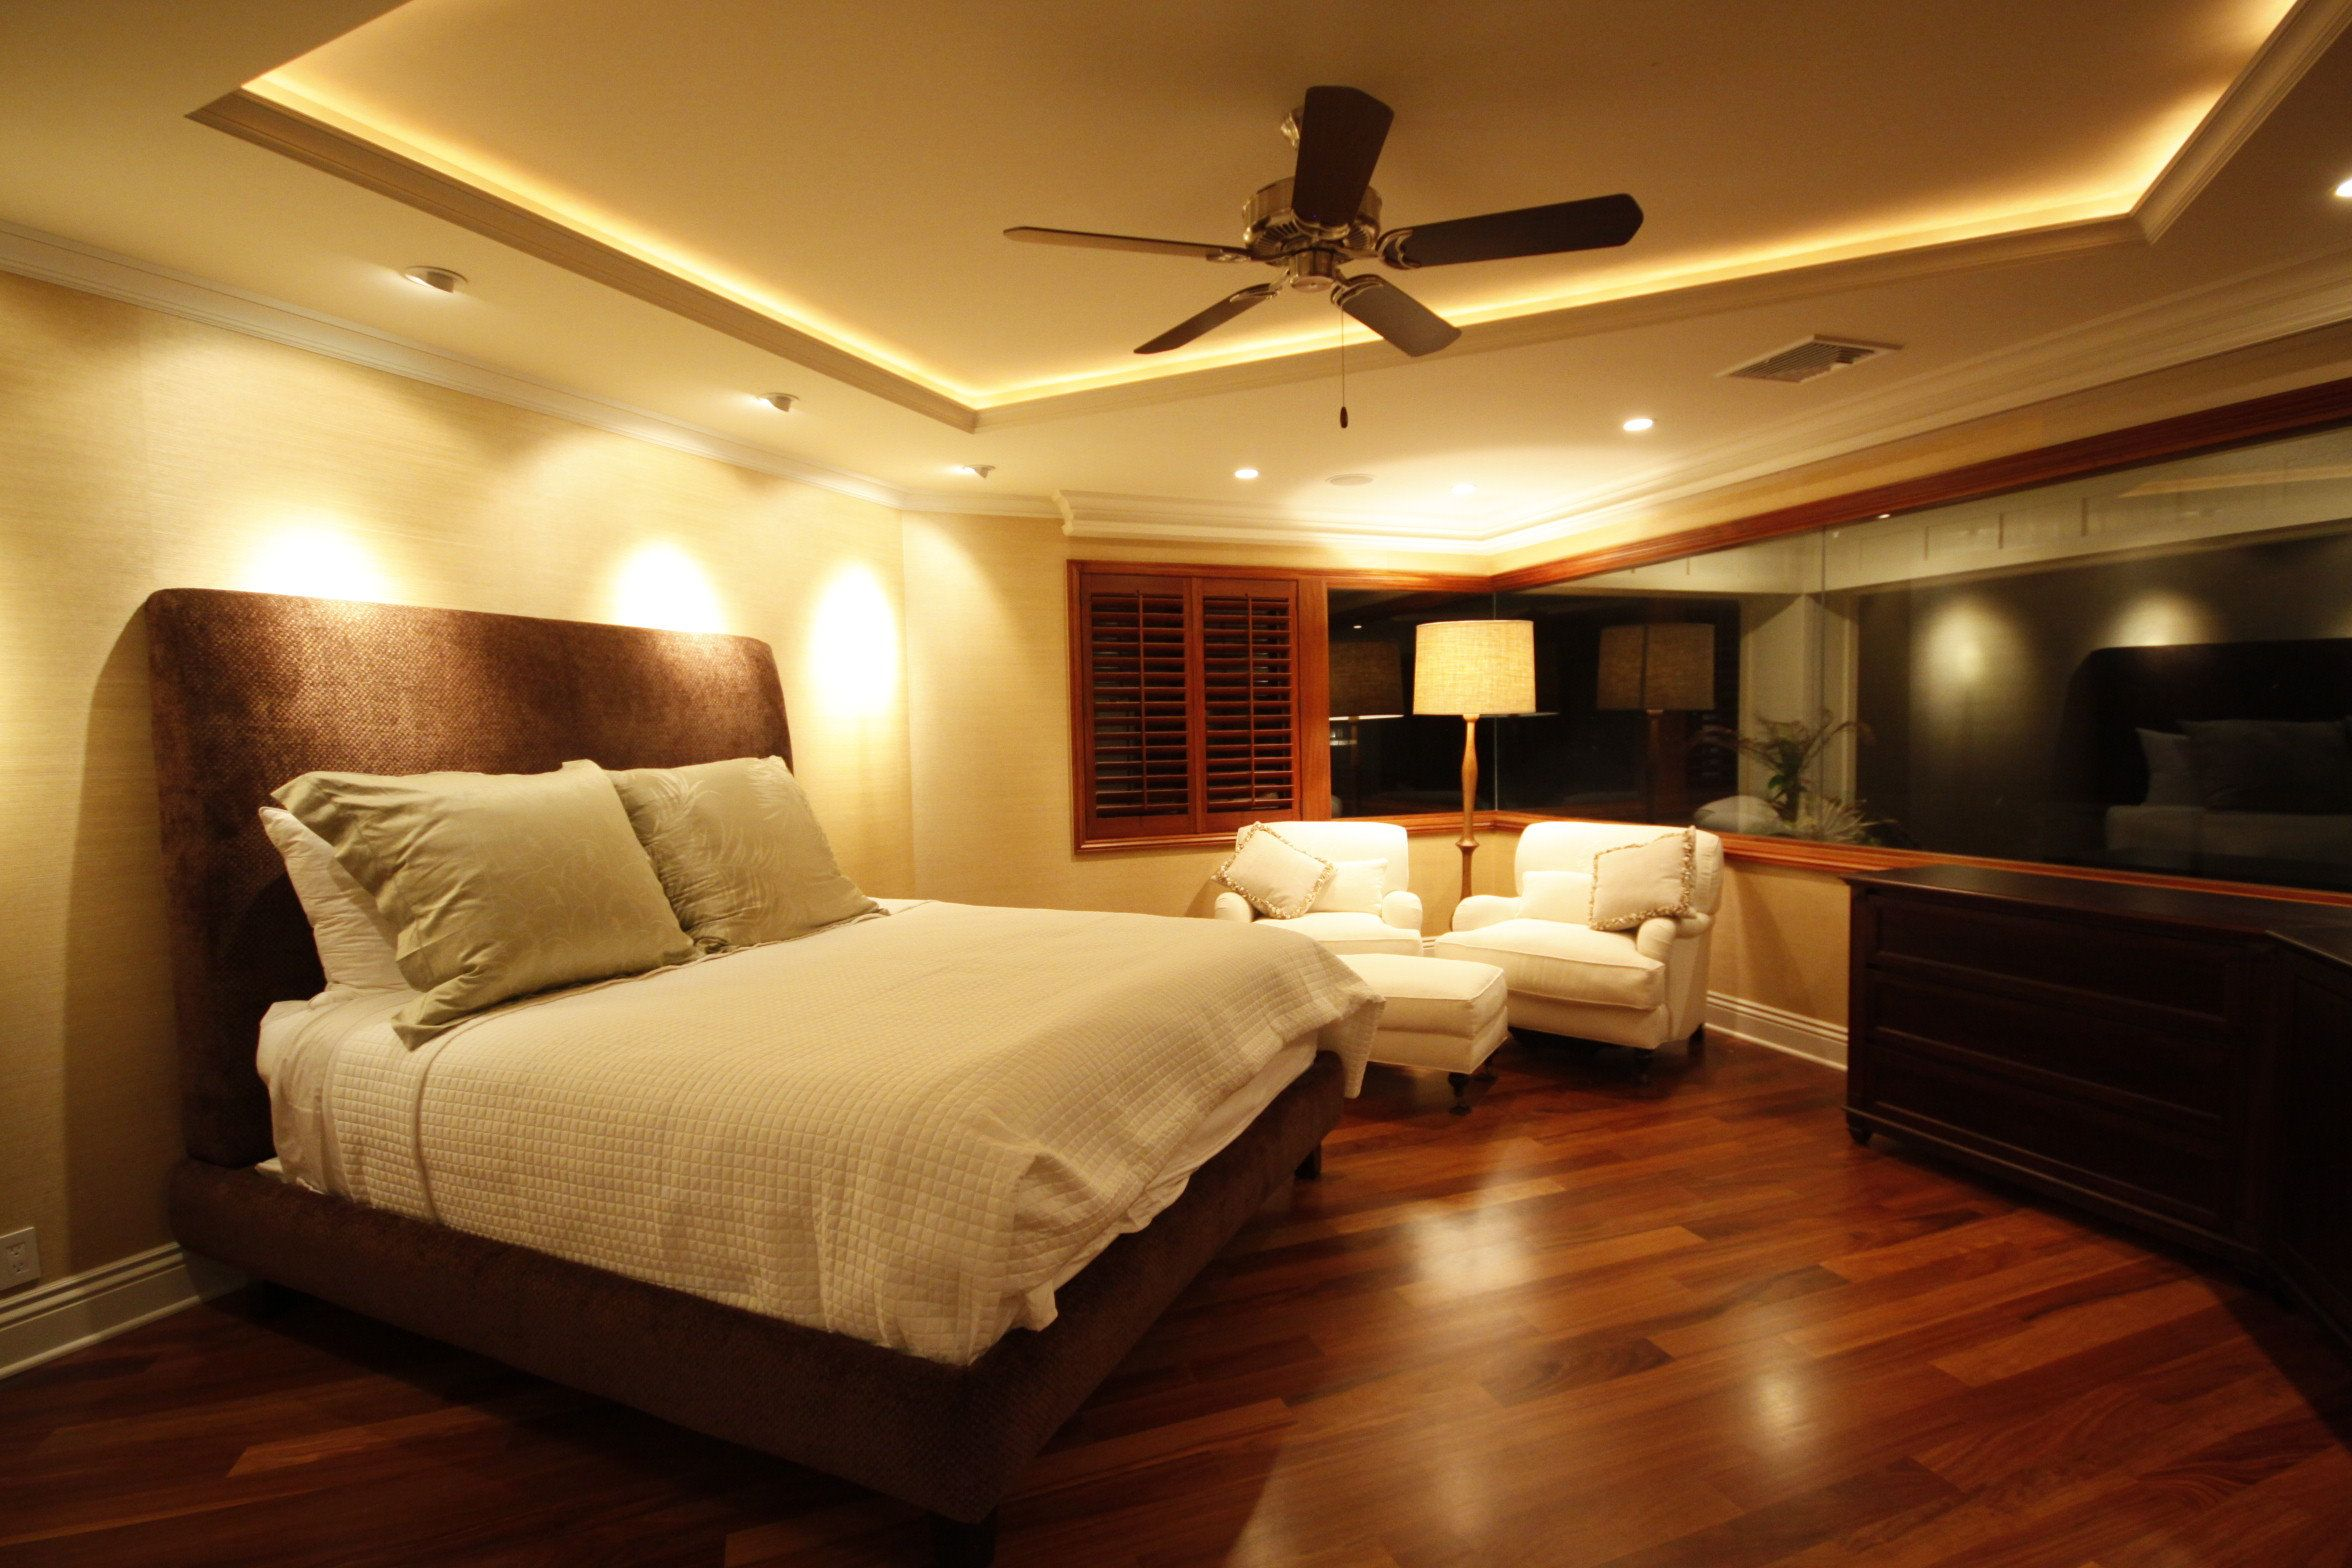 Appealing Master Bedroom Modern Decor With Wooden Floors: bedroom design lighting